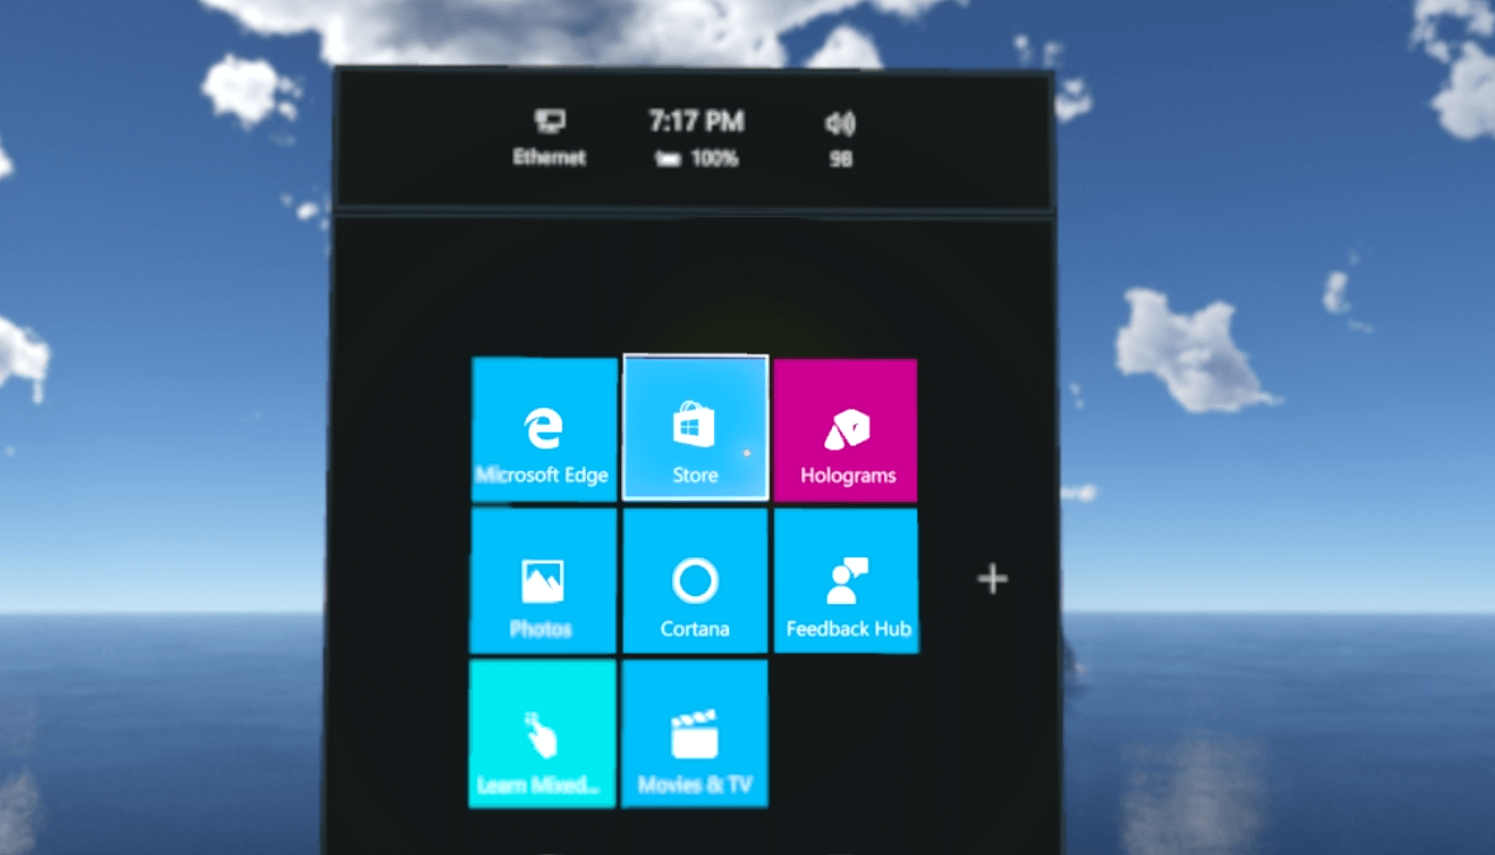 Wallpaper maker for windows 10 - Mixed Reality Is A Big Part Of The Windows 10 Creators Update This Feature Is Perhaps One Of The Biggest New Additions To Windows 10 That S Coming With The